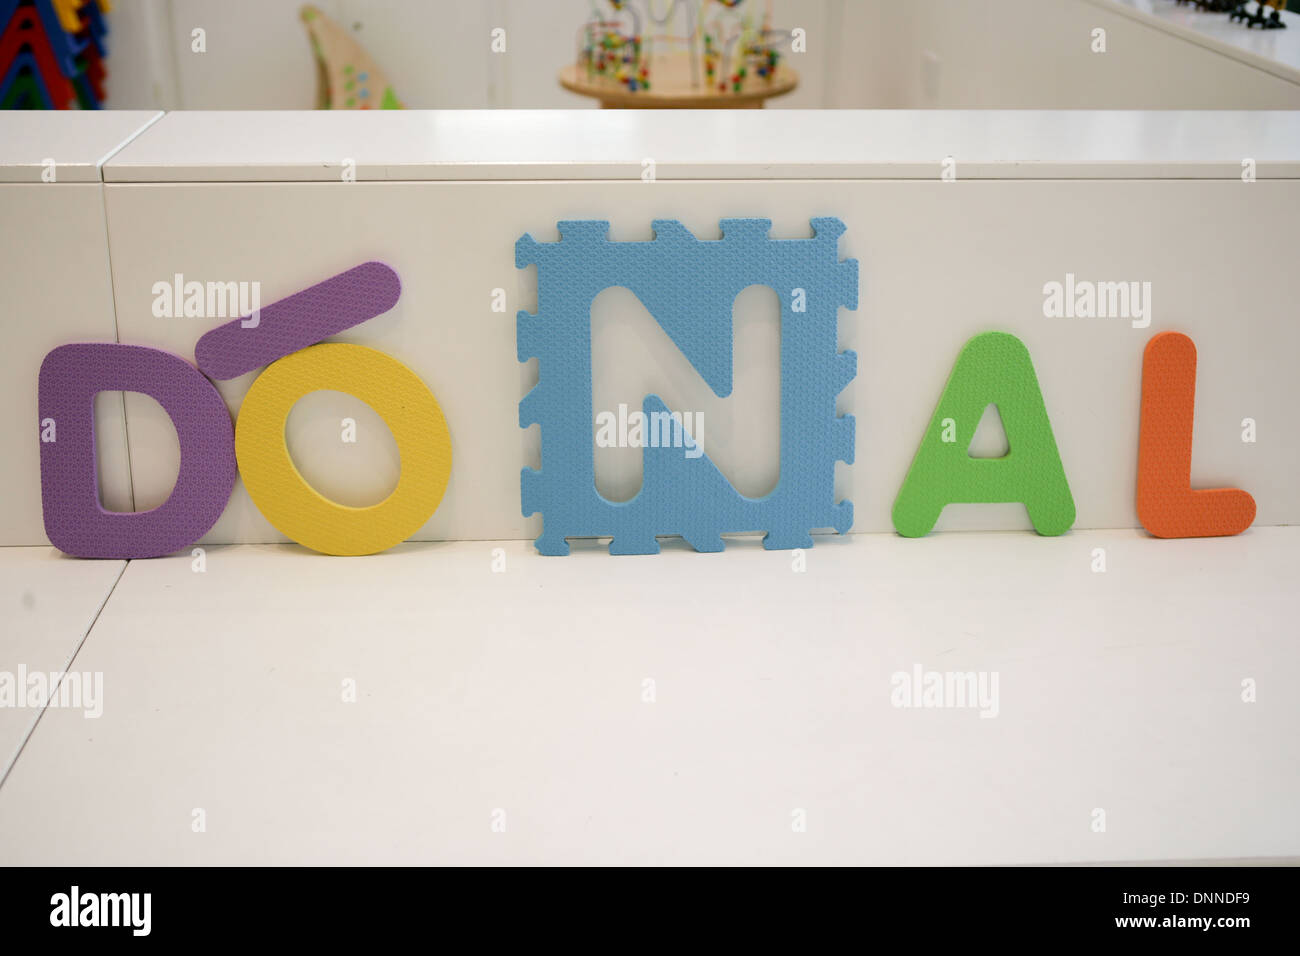 02 January 2014 Belfast, UK Boys' name written in soft floor tiles, Donal is a Irish name. Donal is the Irish name for Daniel - Stock Image